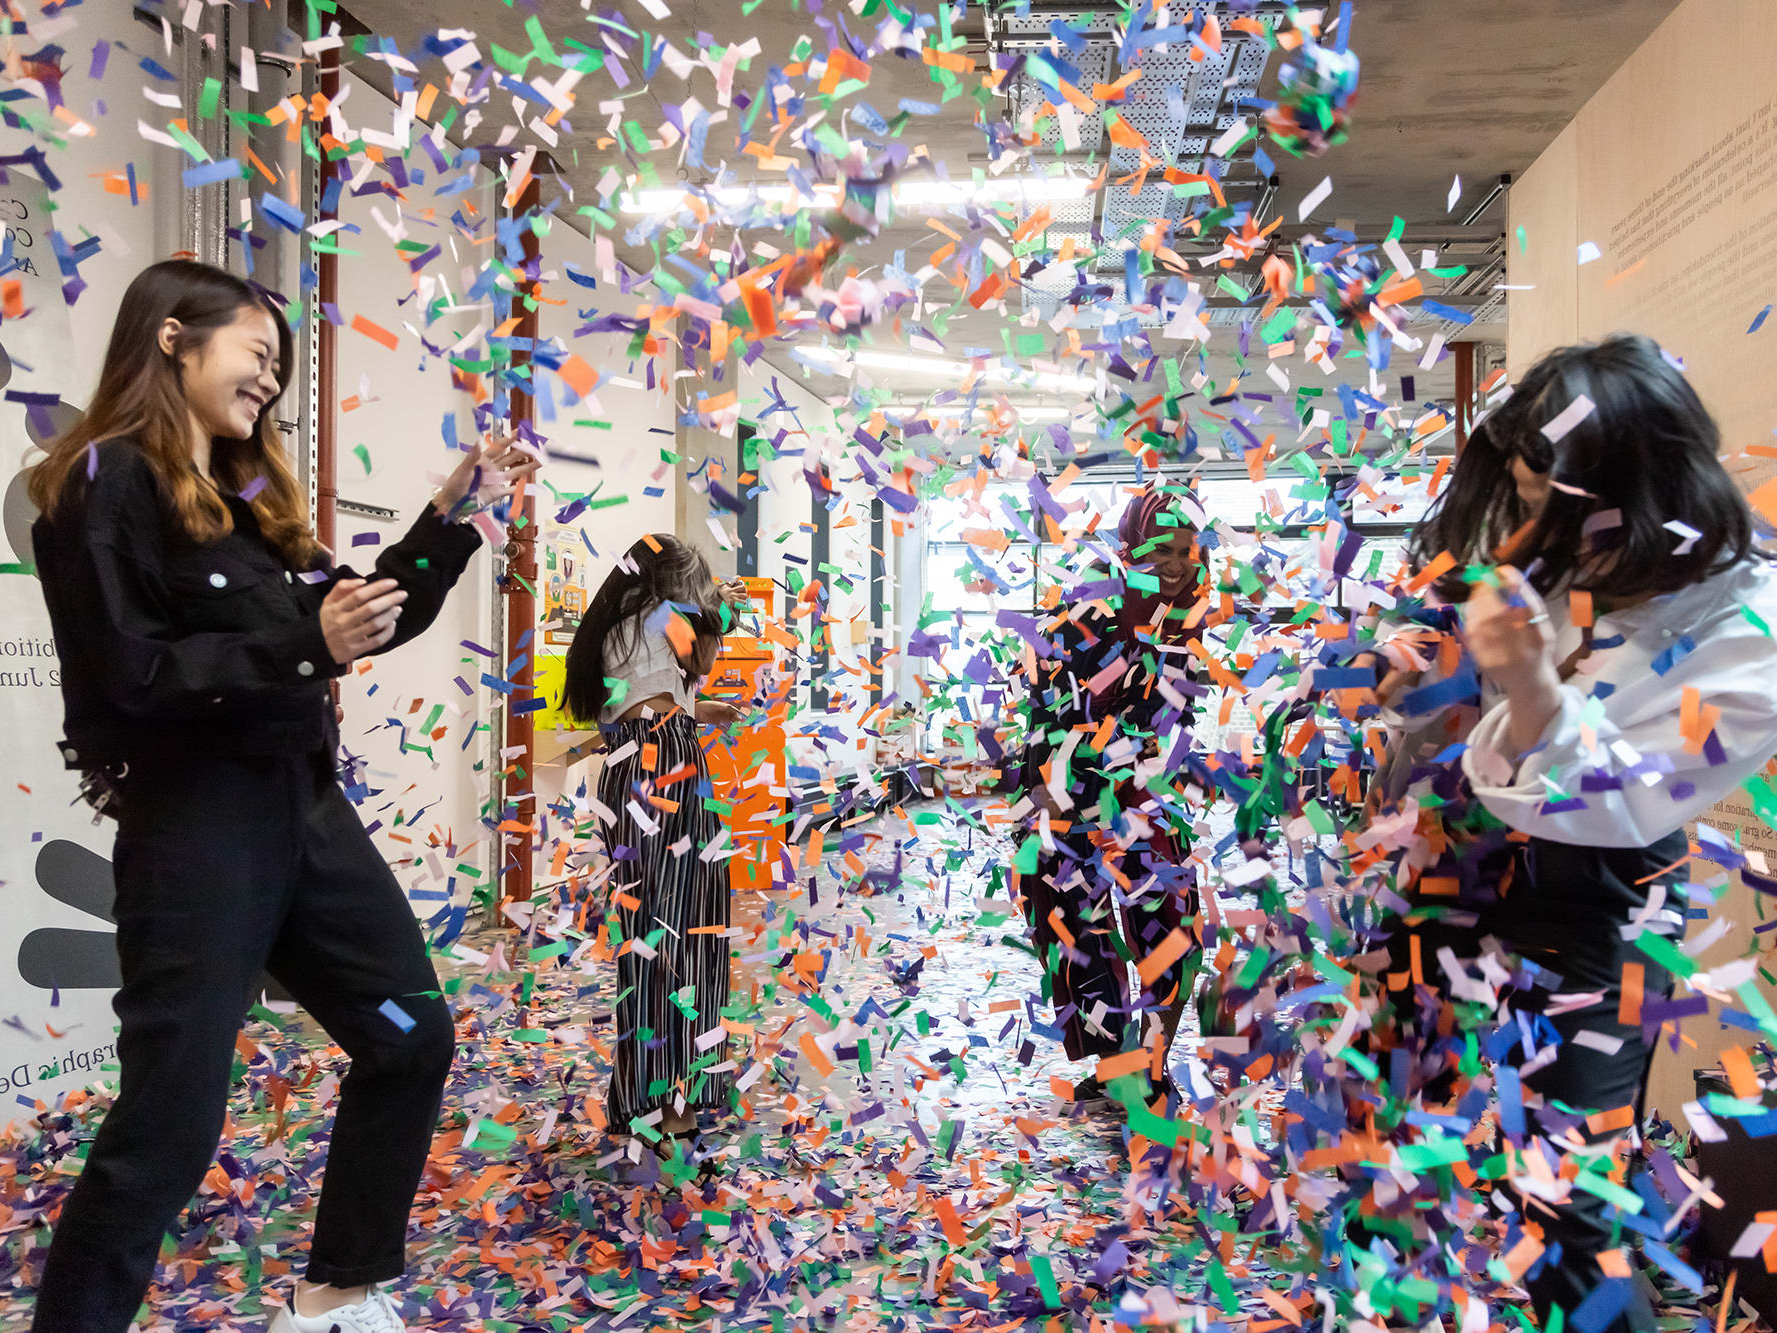 Four students throw green, orange, purple and white confetti at each other at the BA Graphic Design Summer Show at 坎伯韦尔